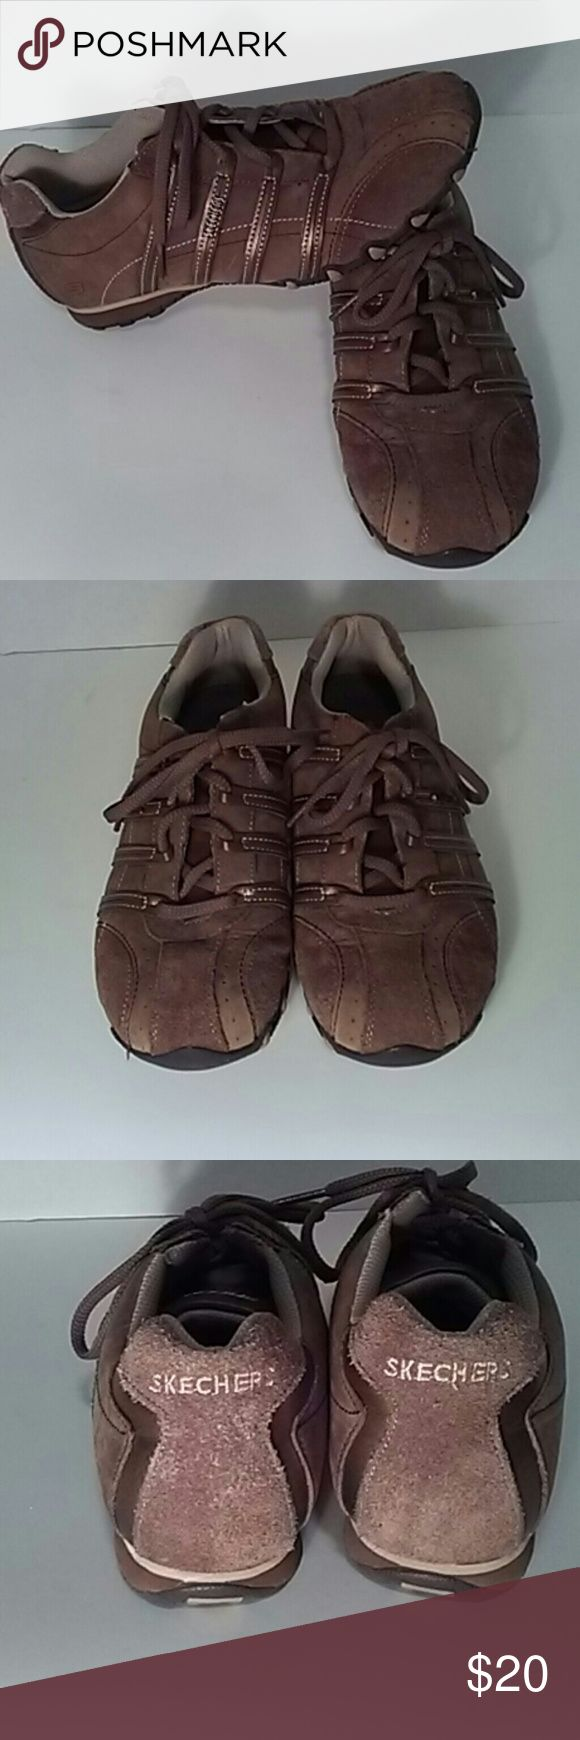 Sz 7 Skechers Patroller Walking Shoes Gently used brown Sketchers. In excellent condition! Skechers designs yet another cool sport-fusion sneaker to fit seamlessly into your life. Lace up the Patroler with your favorite casual outfits get out there and have a blast!Leather and suede upper with cooling perforations stitching and metallic detail! Skechers Shoes Athletic Shoes